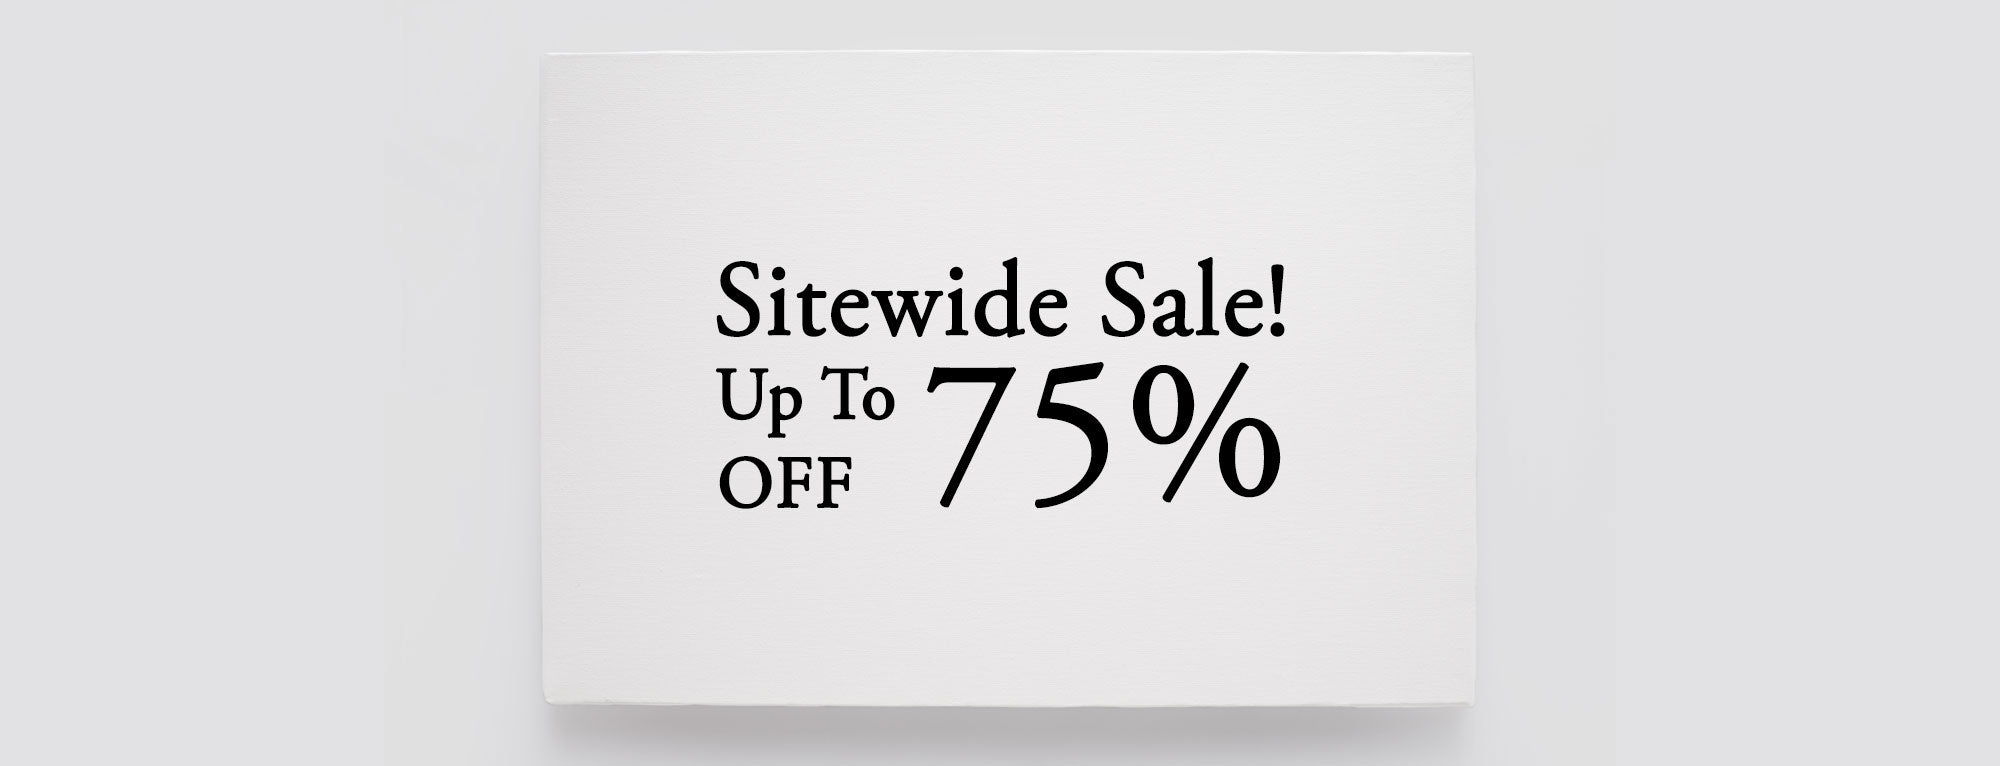 Shop Markdowns - Up To 75% Off